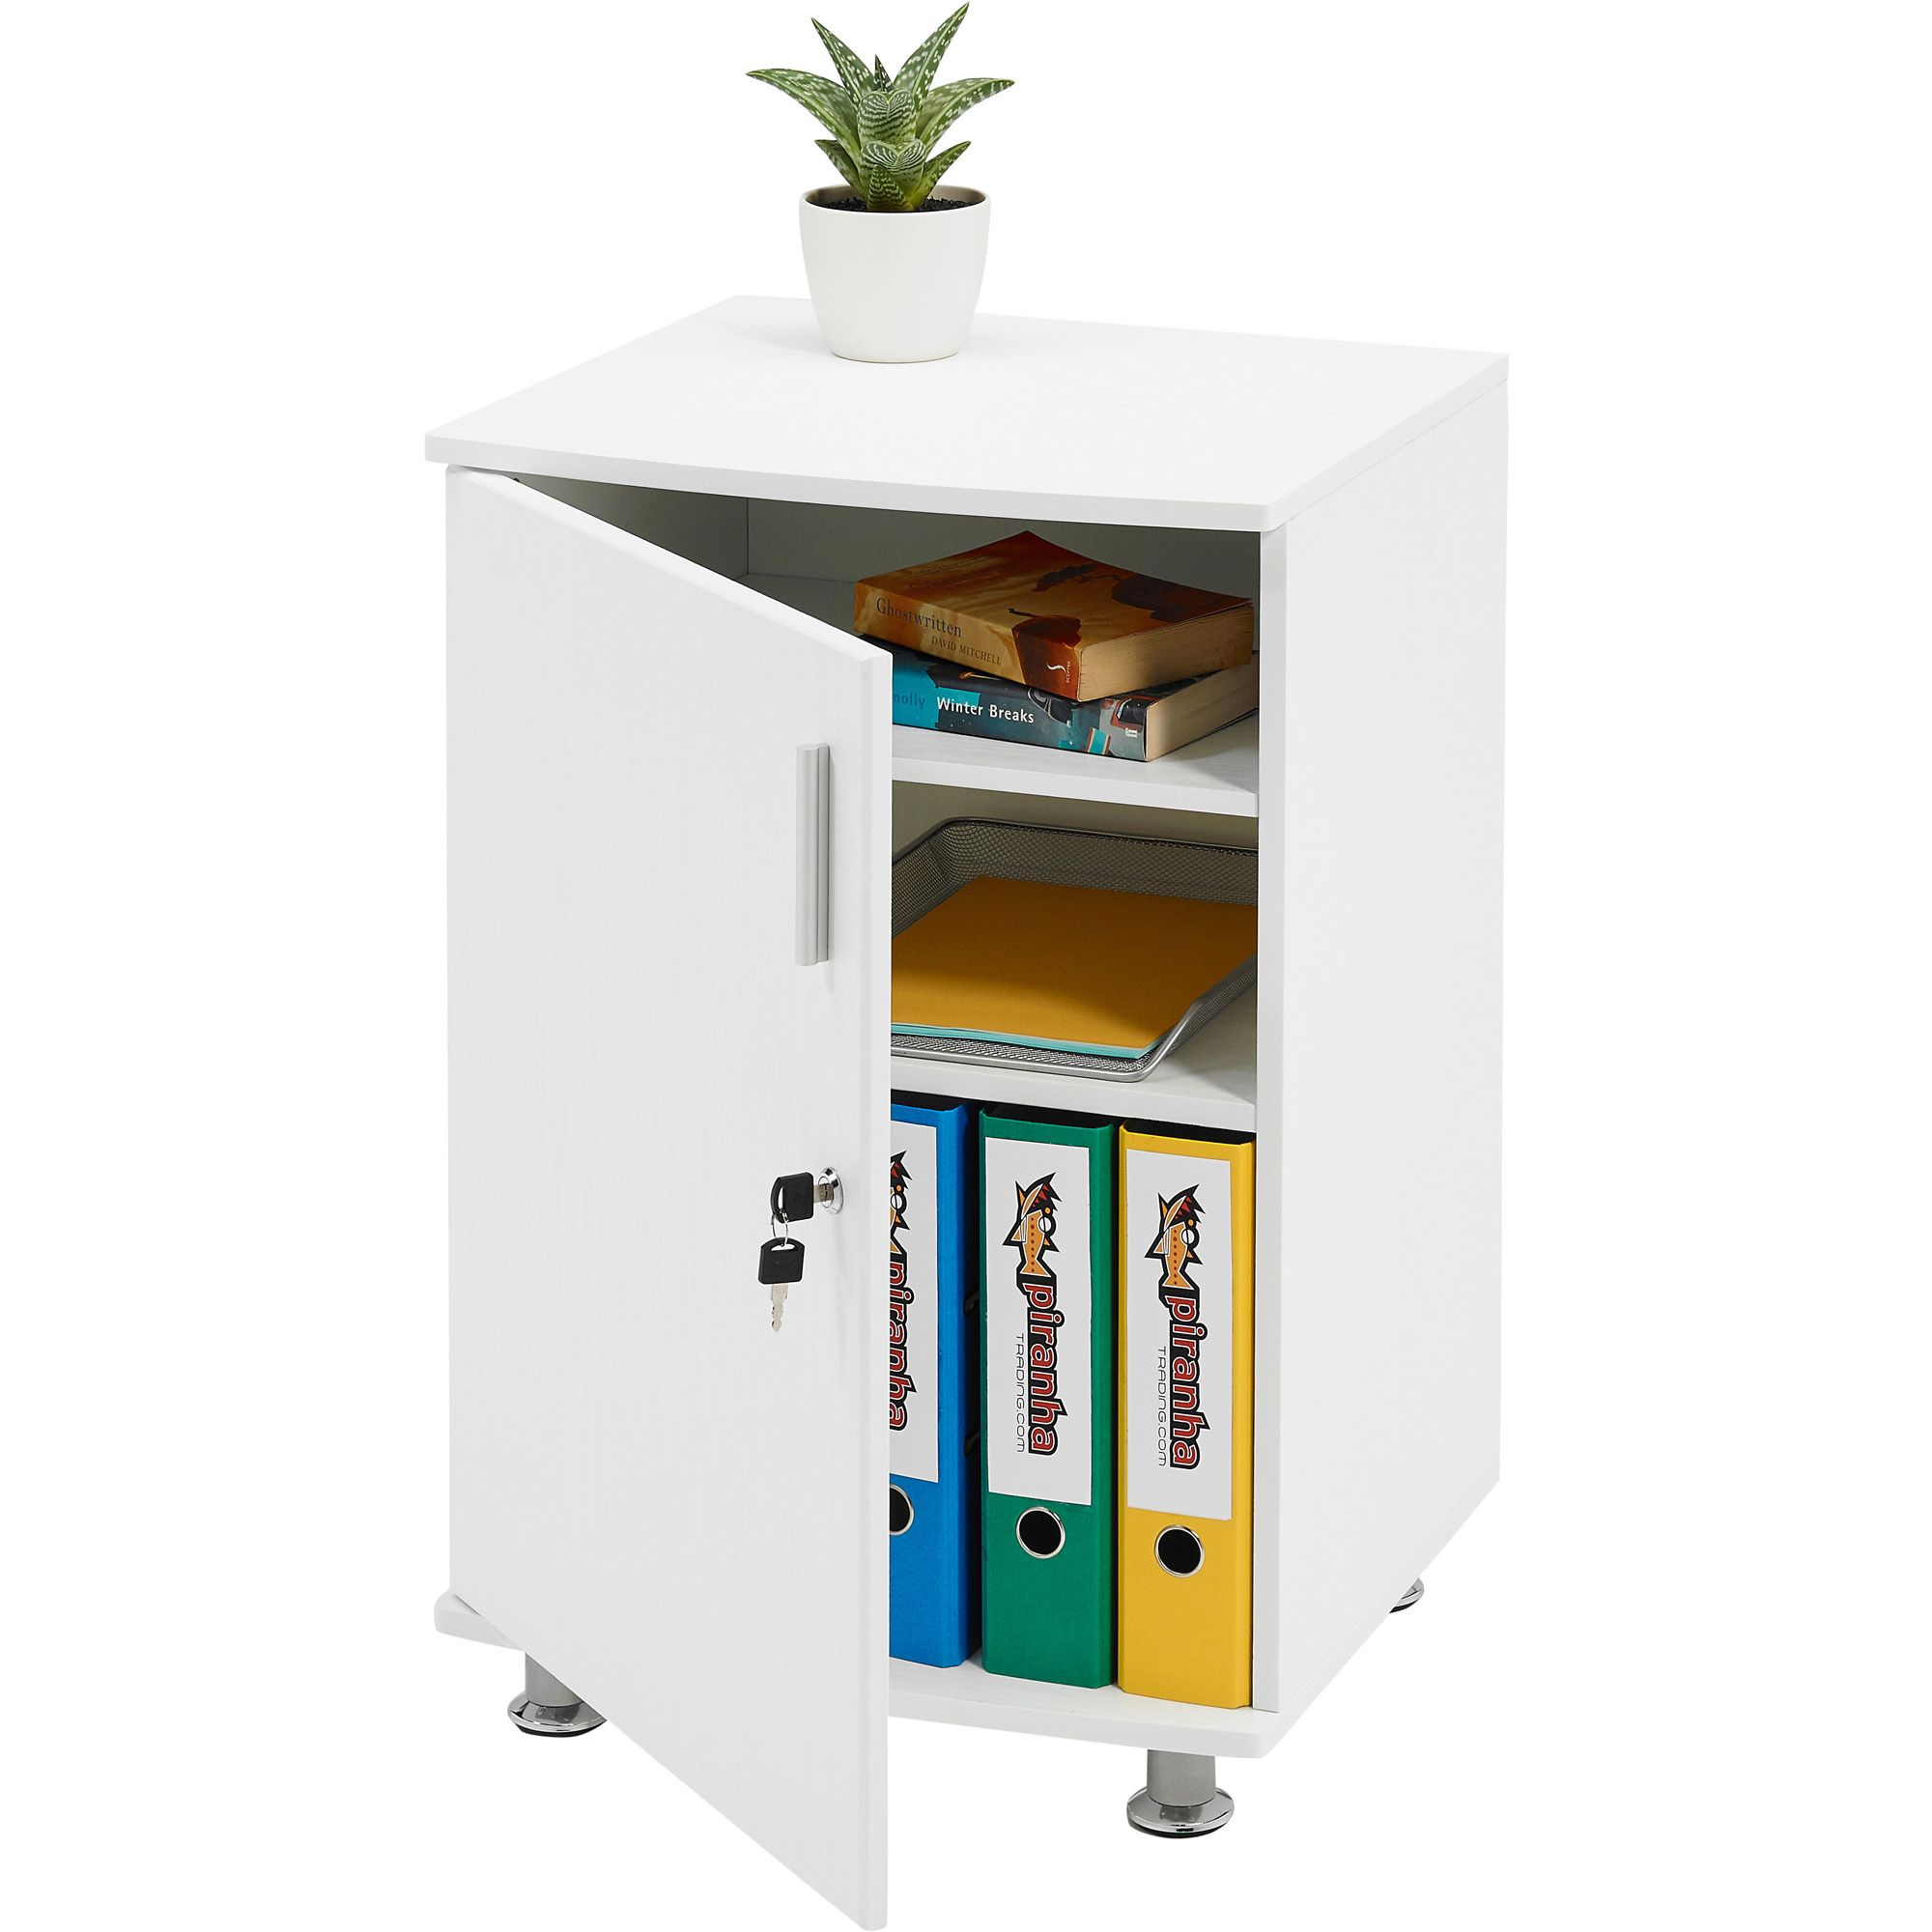 Desk Extension Cupboard Lockable Furniture with Shelves Piranha Matt ...